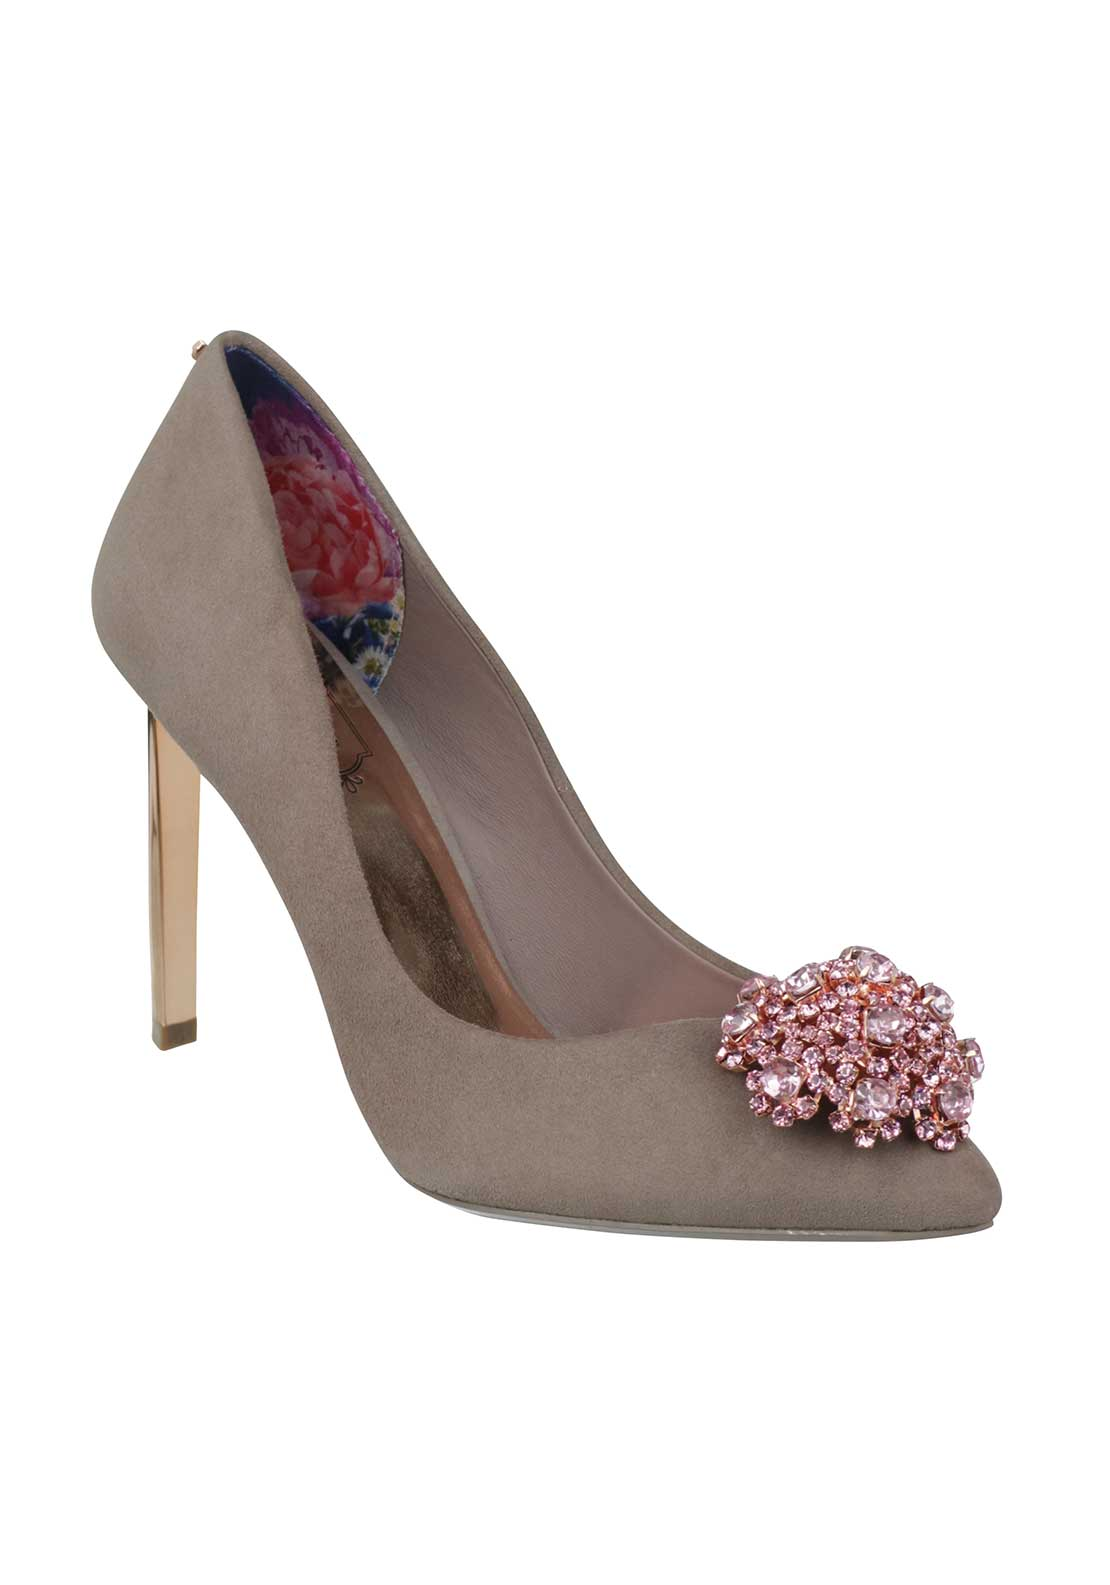 Ted Baker Womens Peetch Suede Heeled Shoes, Taupe